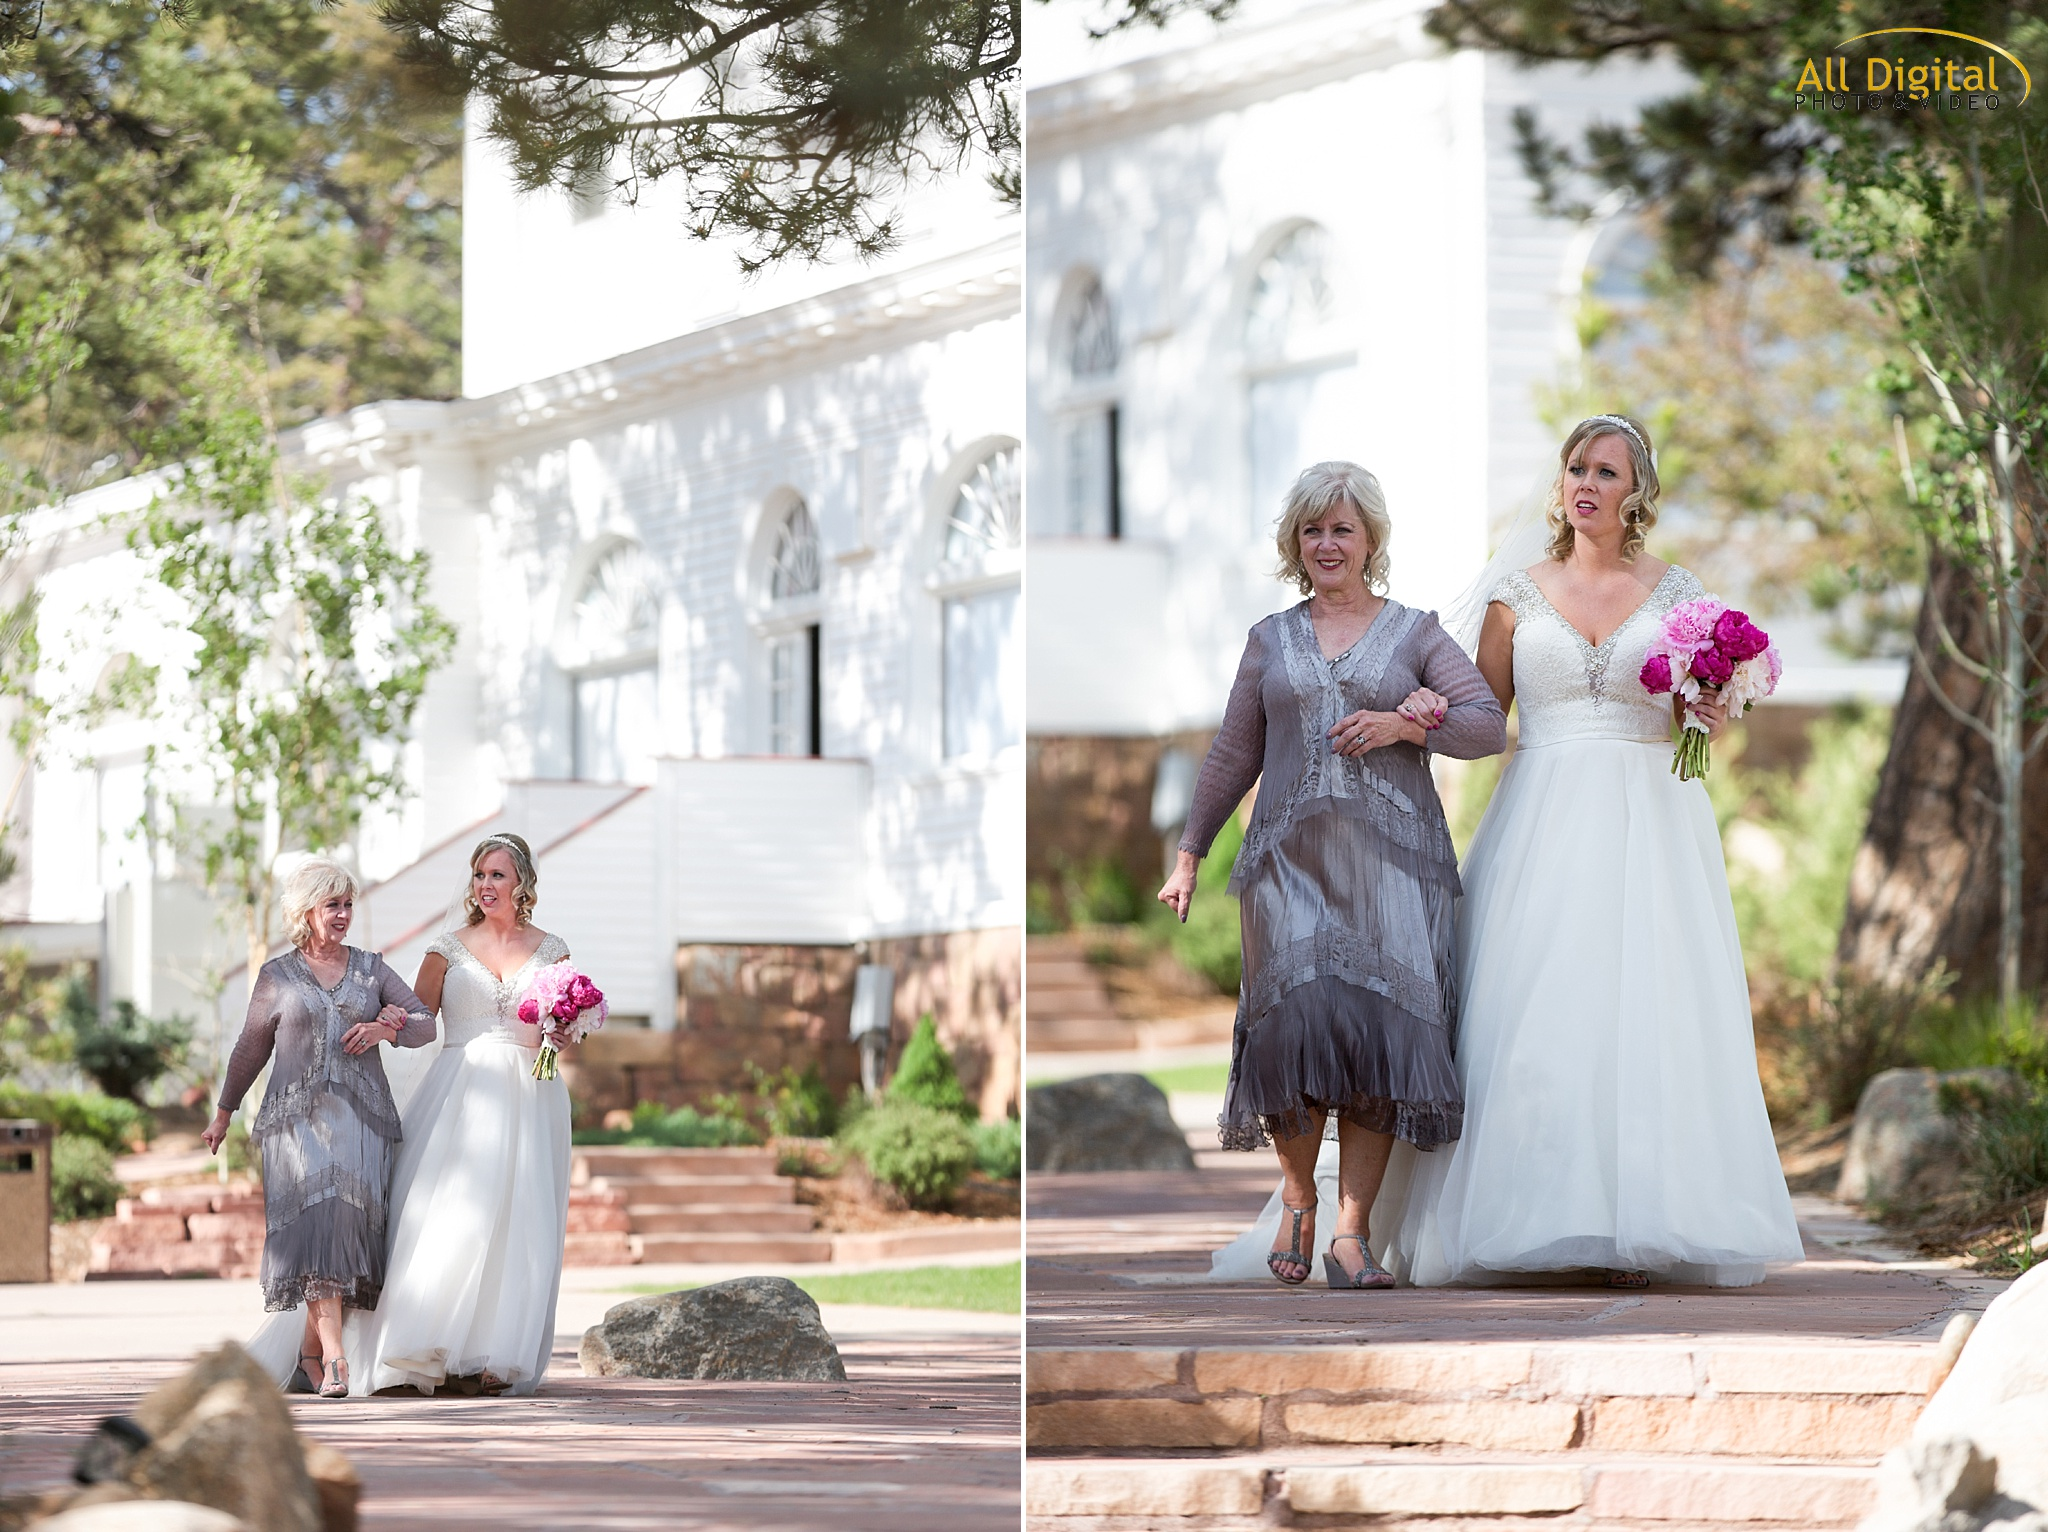 Alison walking down the aisle at the Stanley Hotel in Estes Park, Colorado